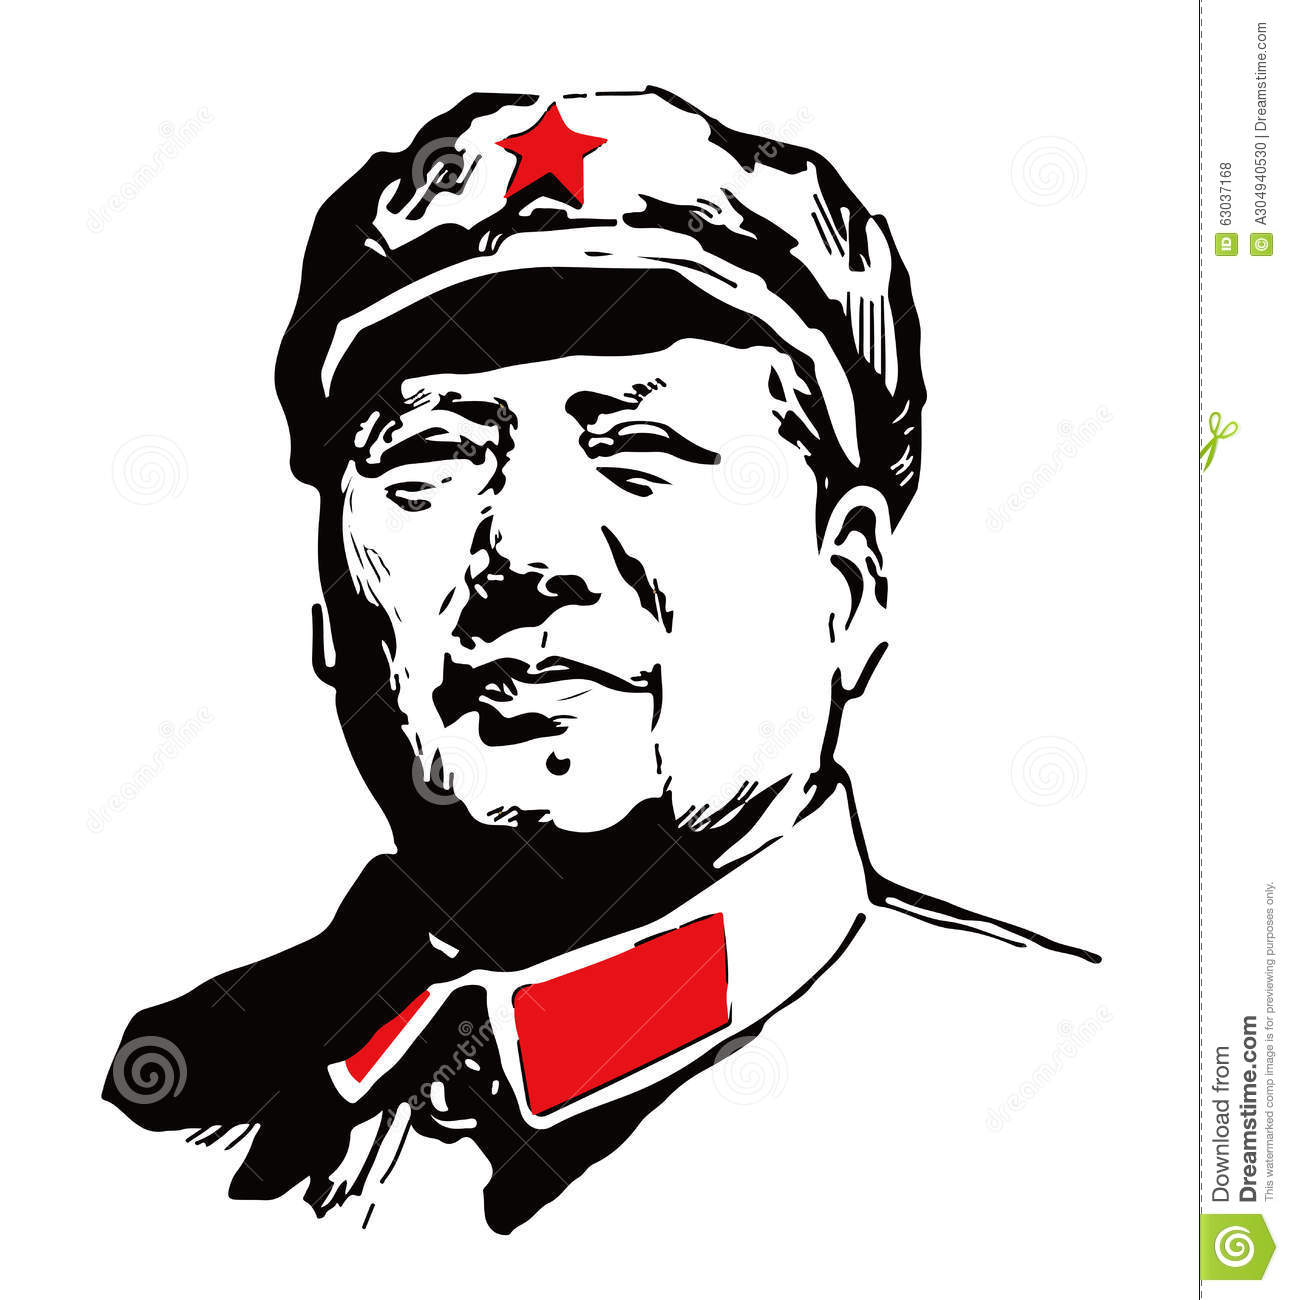 The Head Portrait Of Mao Zedong Editorial Stock Photo - Image ...